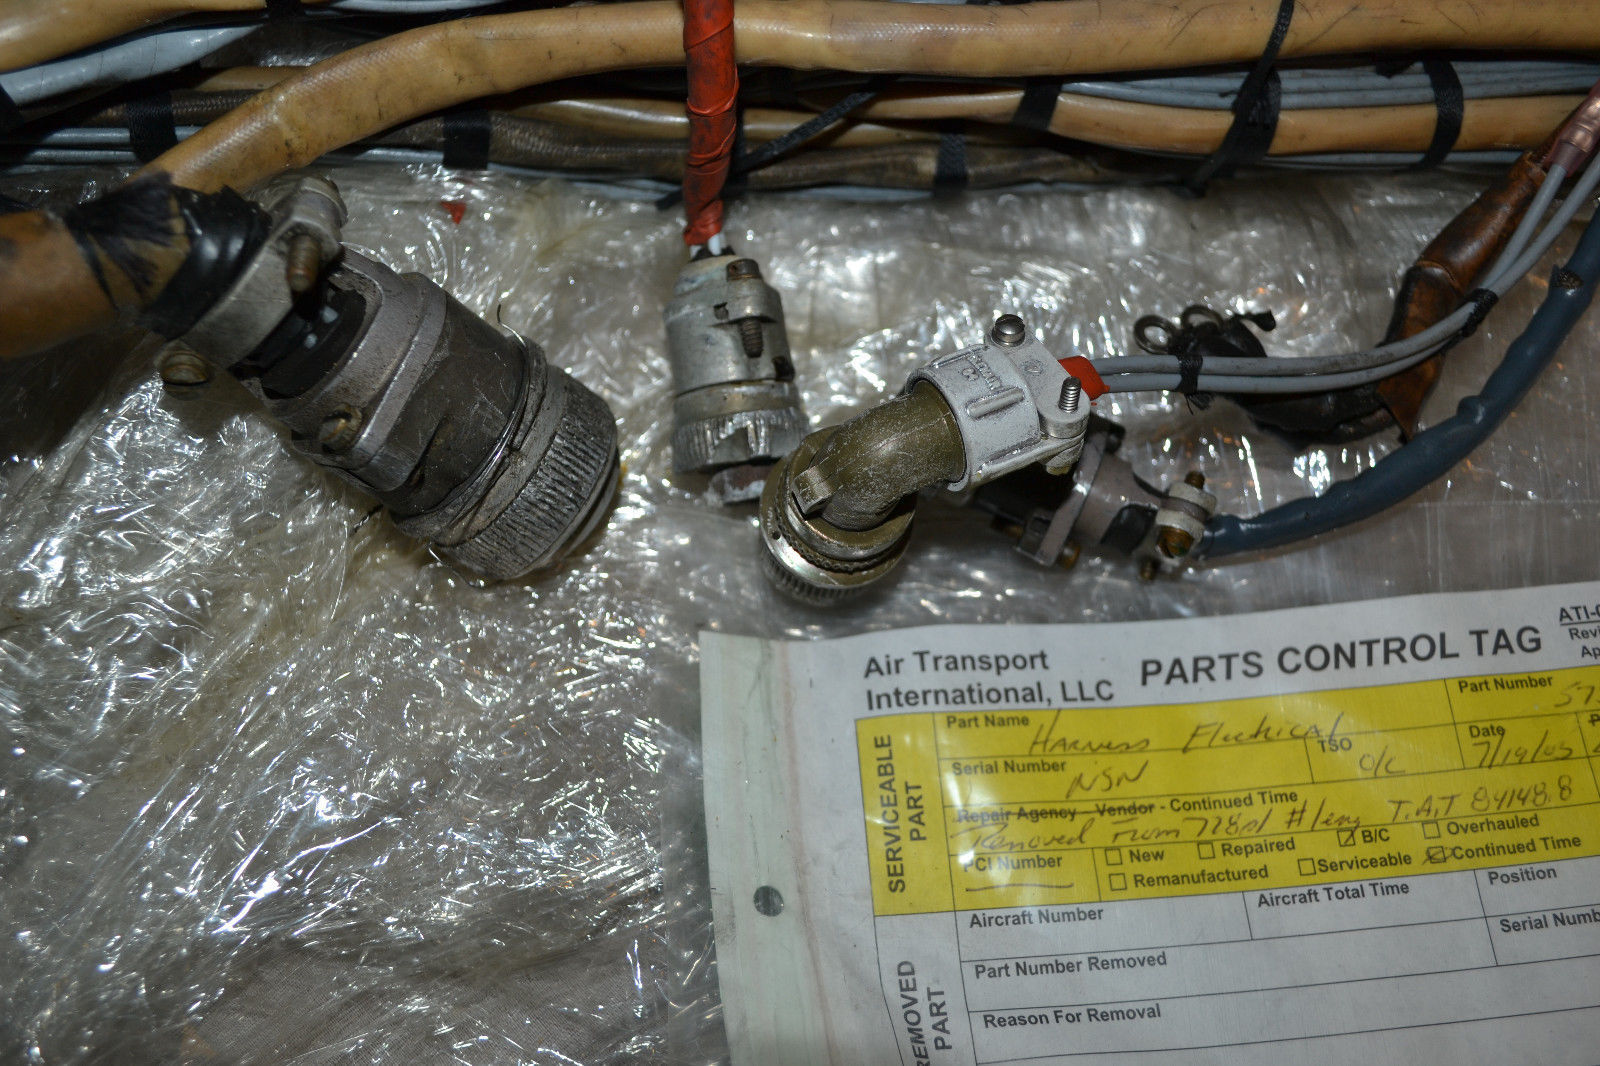 728 Aircraft Aviation Electrical wiring and 50 similar items on